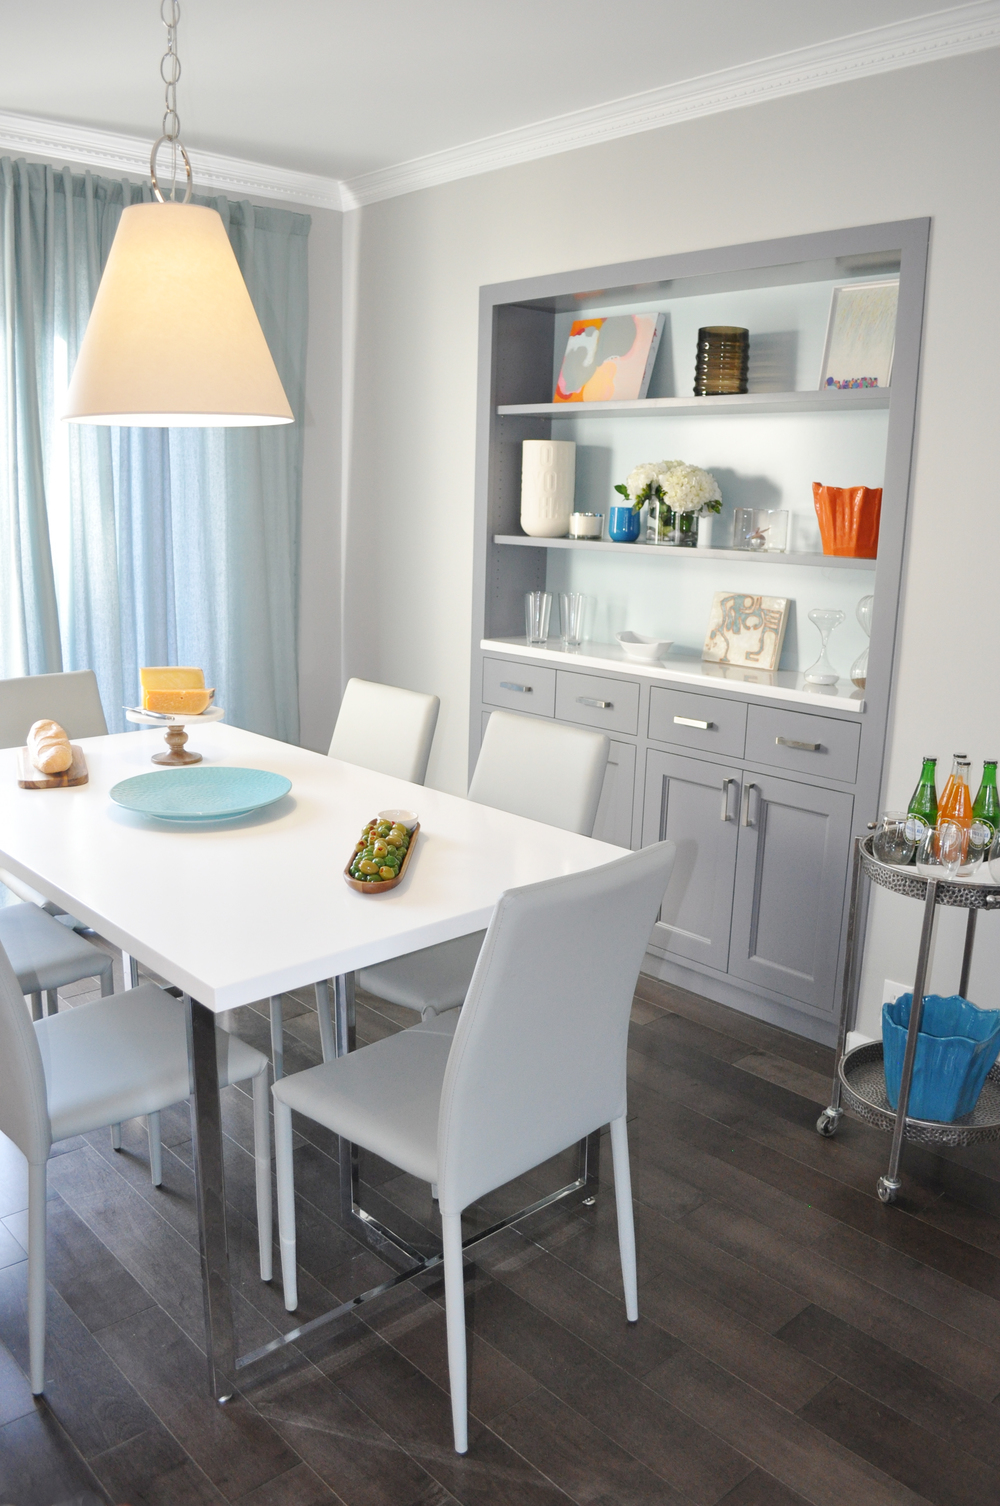 Kim Mitchell Production Designer_HGTV_Buying and Selling with The Property Brothers_Season 3_Episode 316_Dining Room Design_Dining Room Cabinetry_Kitchen Table Pendant Light_Grey Wood Flooring_Kenise Barnes Gallery Art_Grey Cabinets.jpg